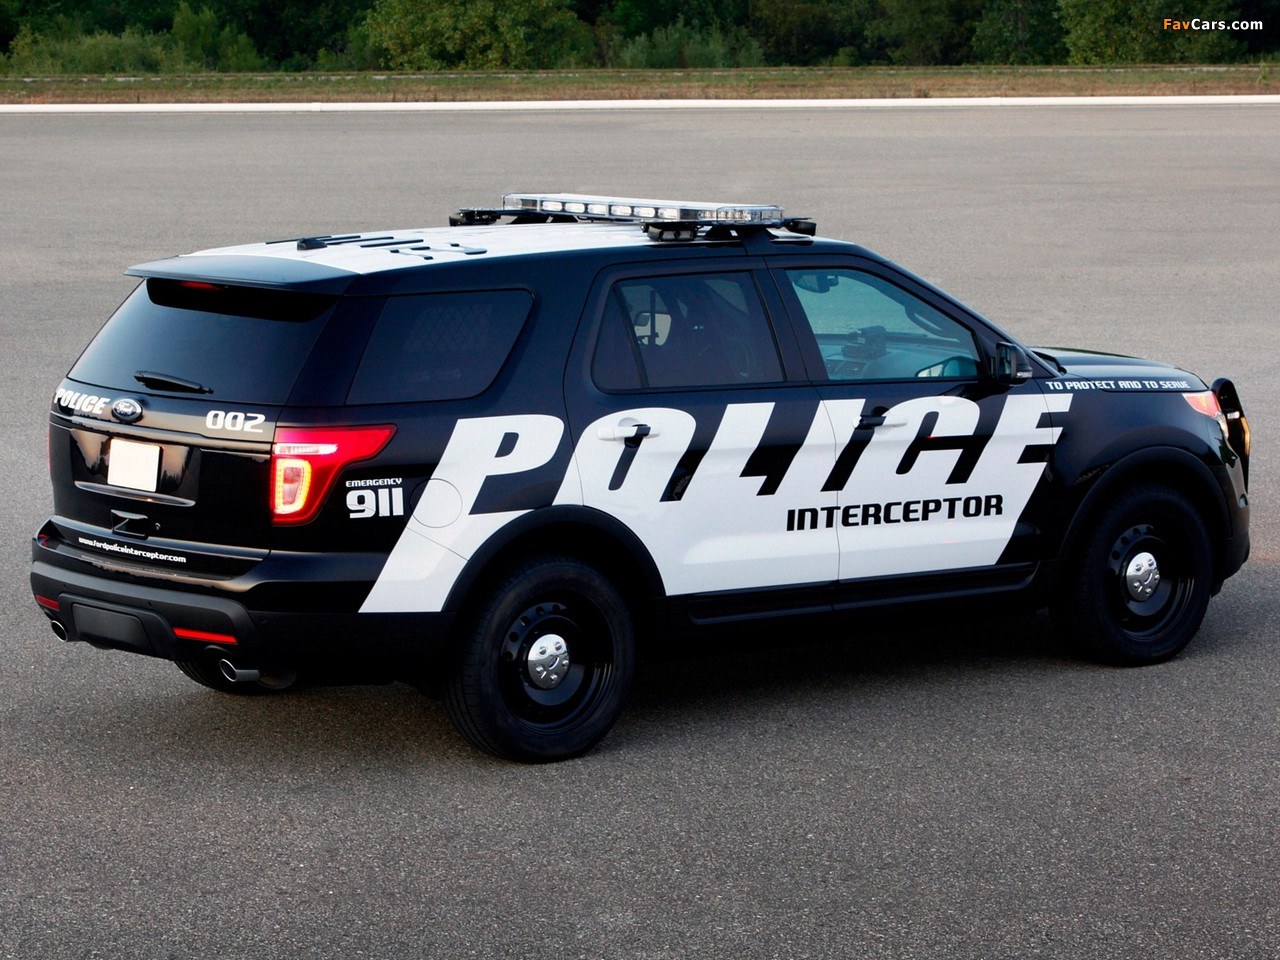 Ford Police Interceptor Utility 2010 images (1280 x 960)